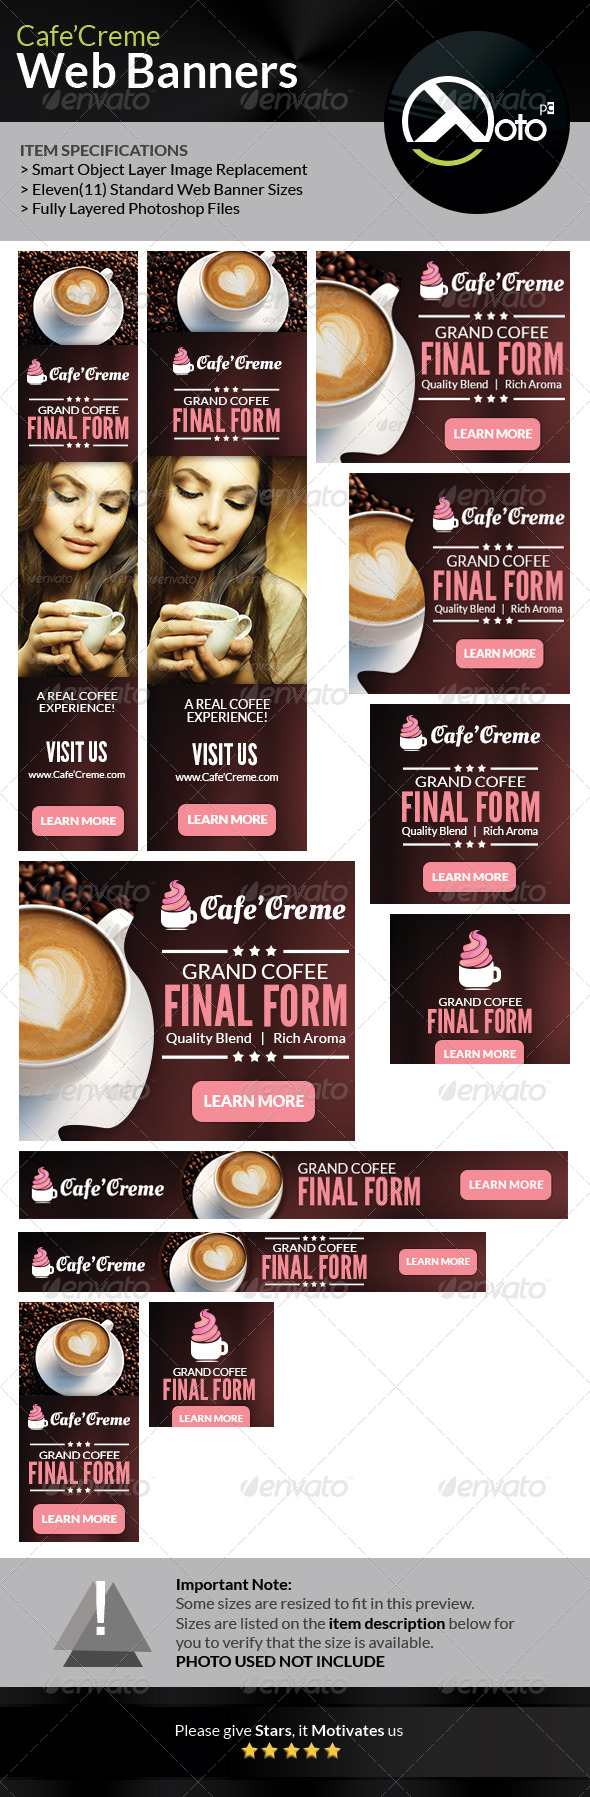 Cafe Creme Coffee Store Web Banners - Banners & Ads Web Elements